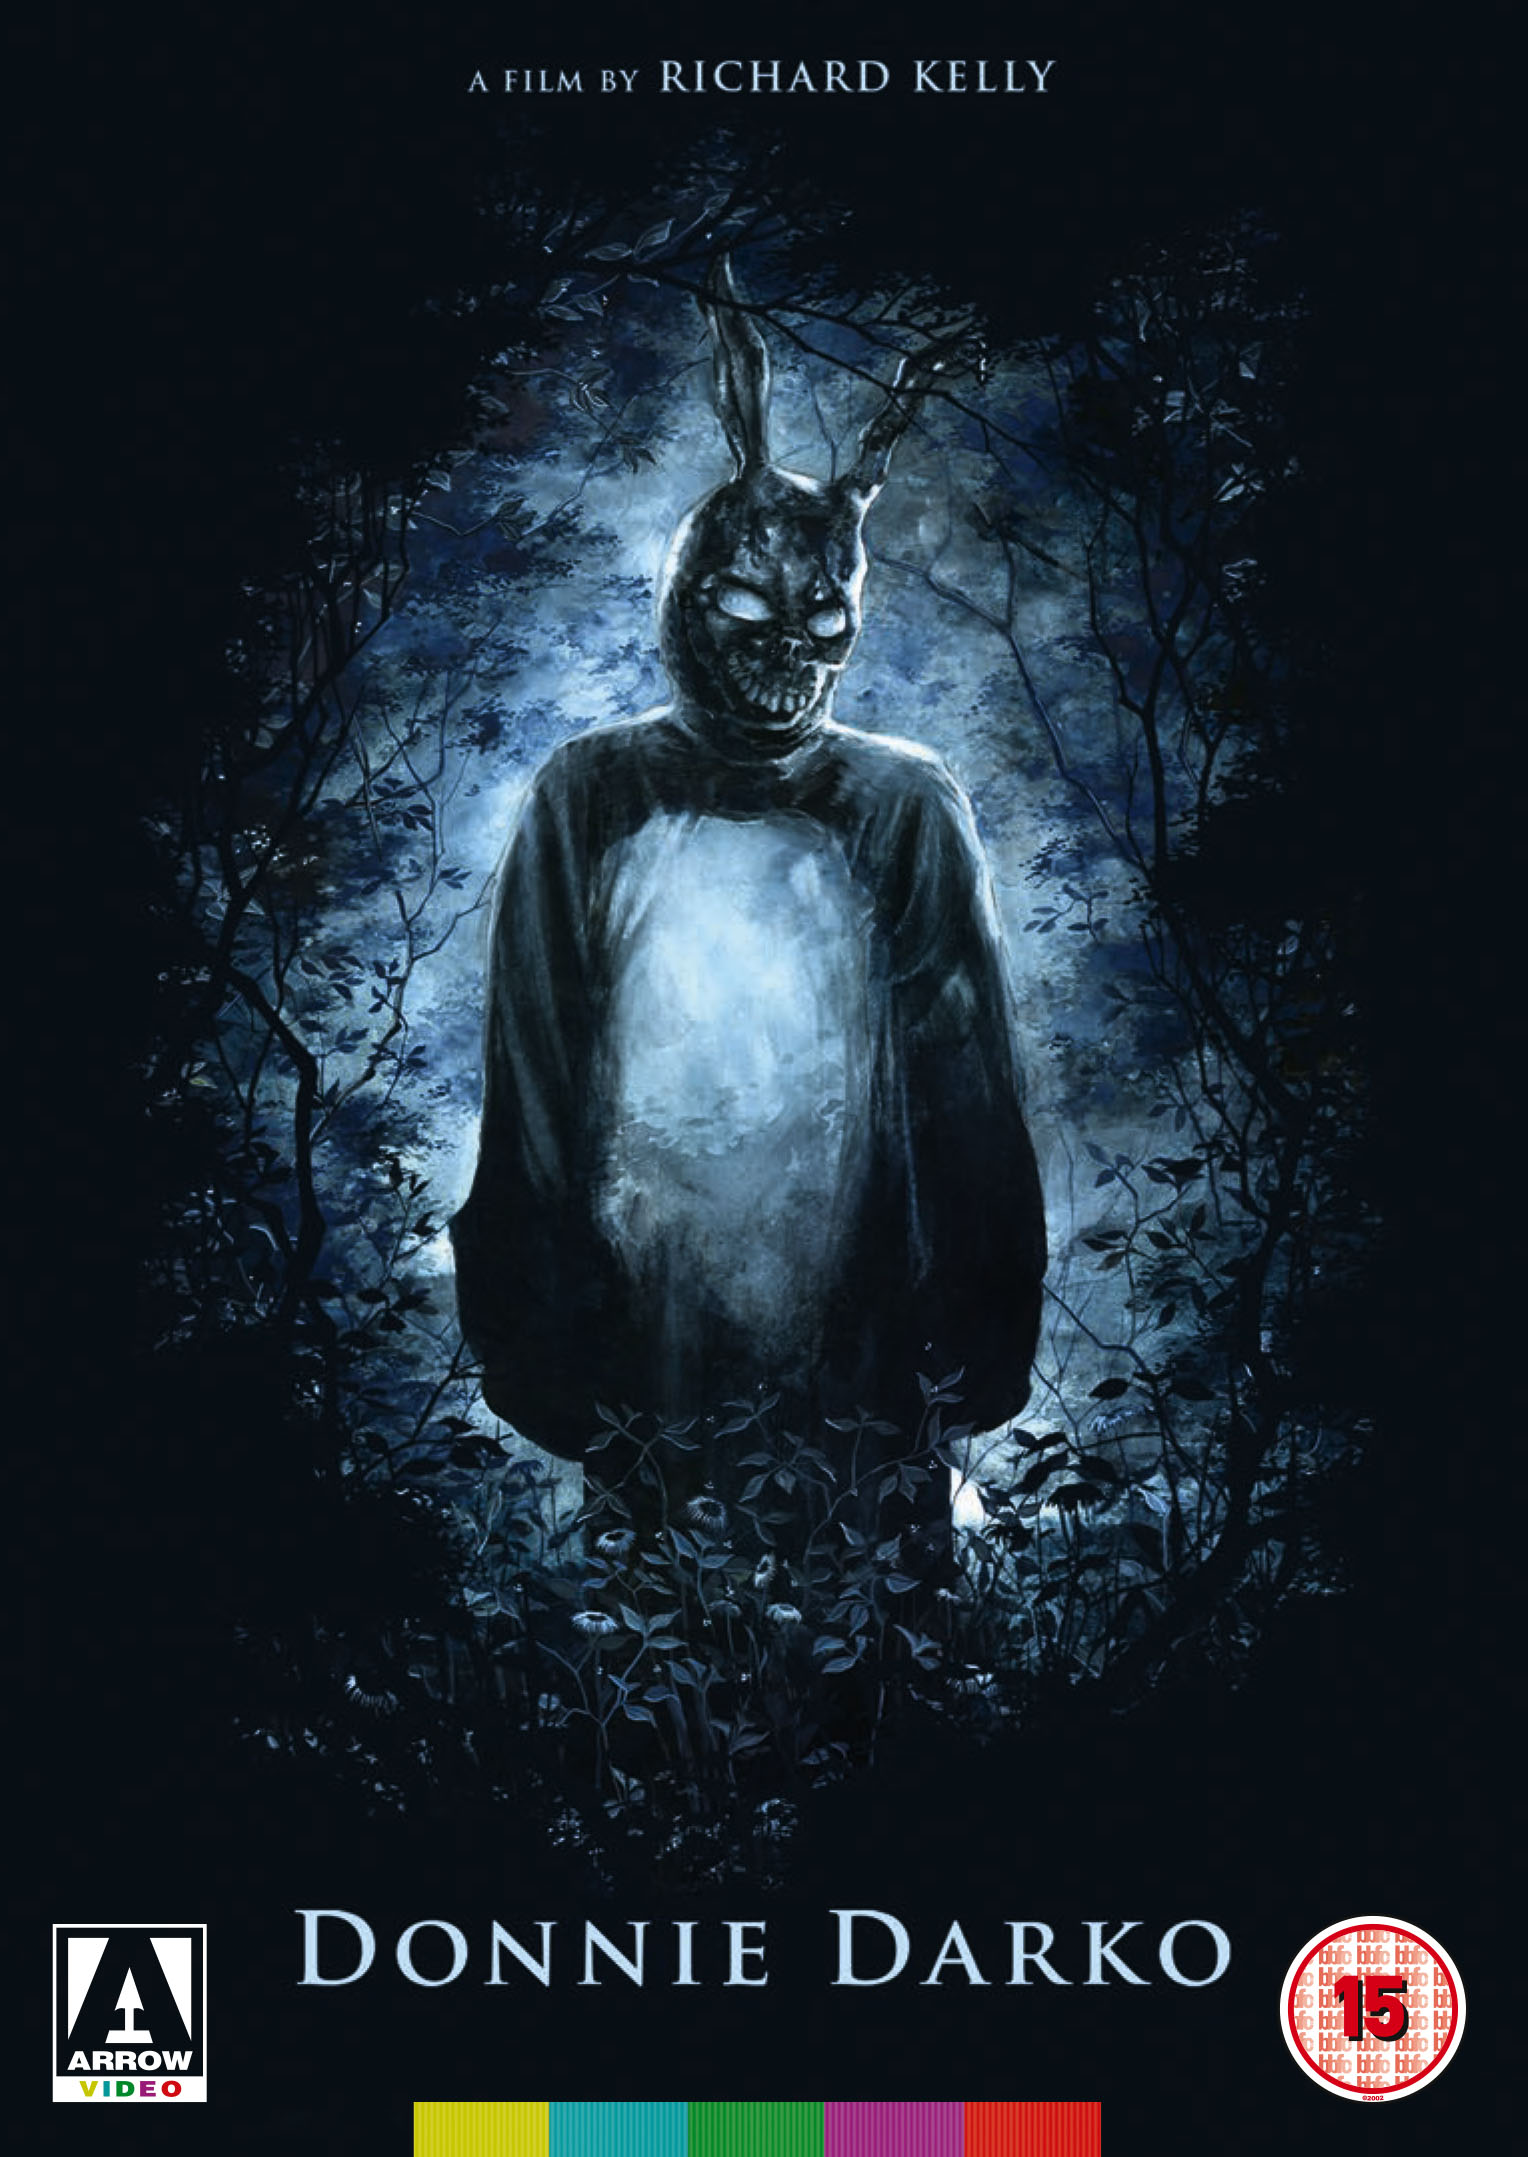 Donnie darko movie theater